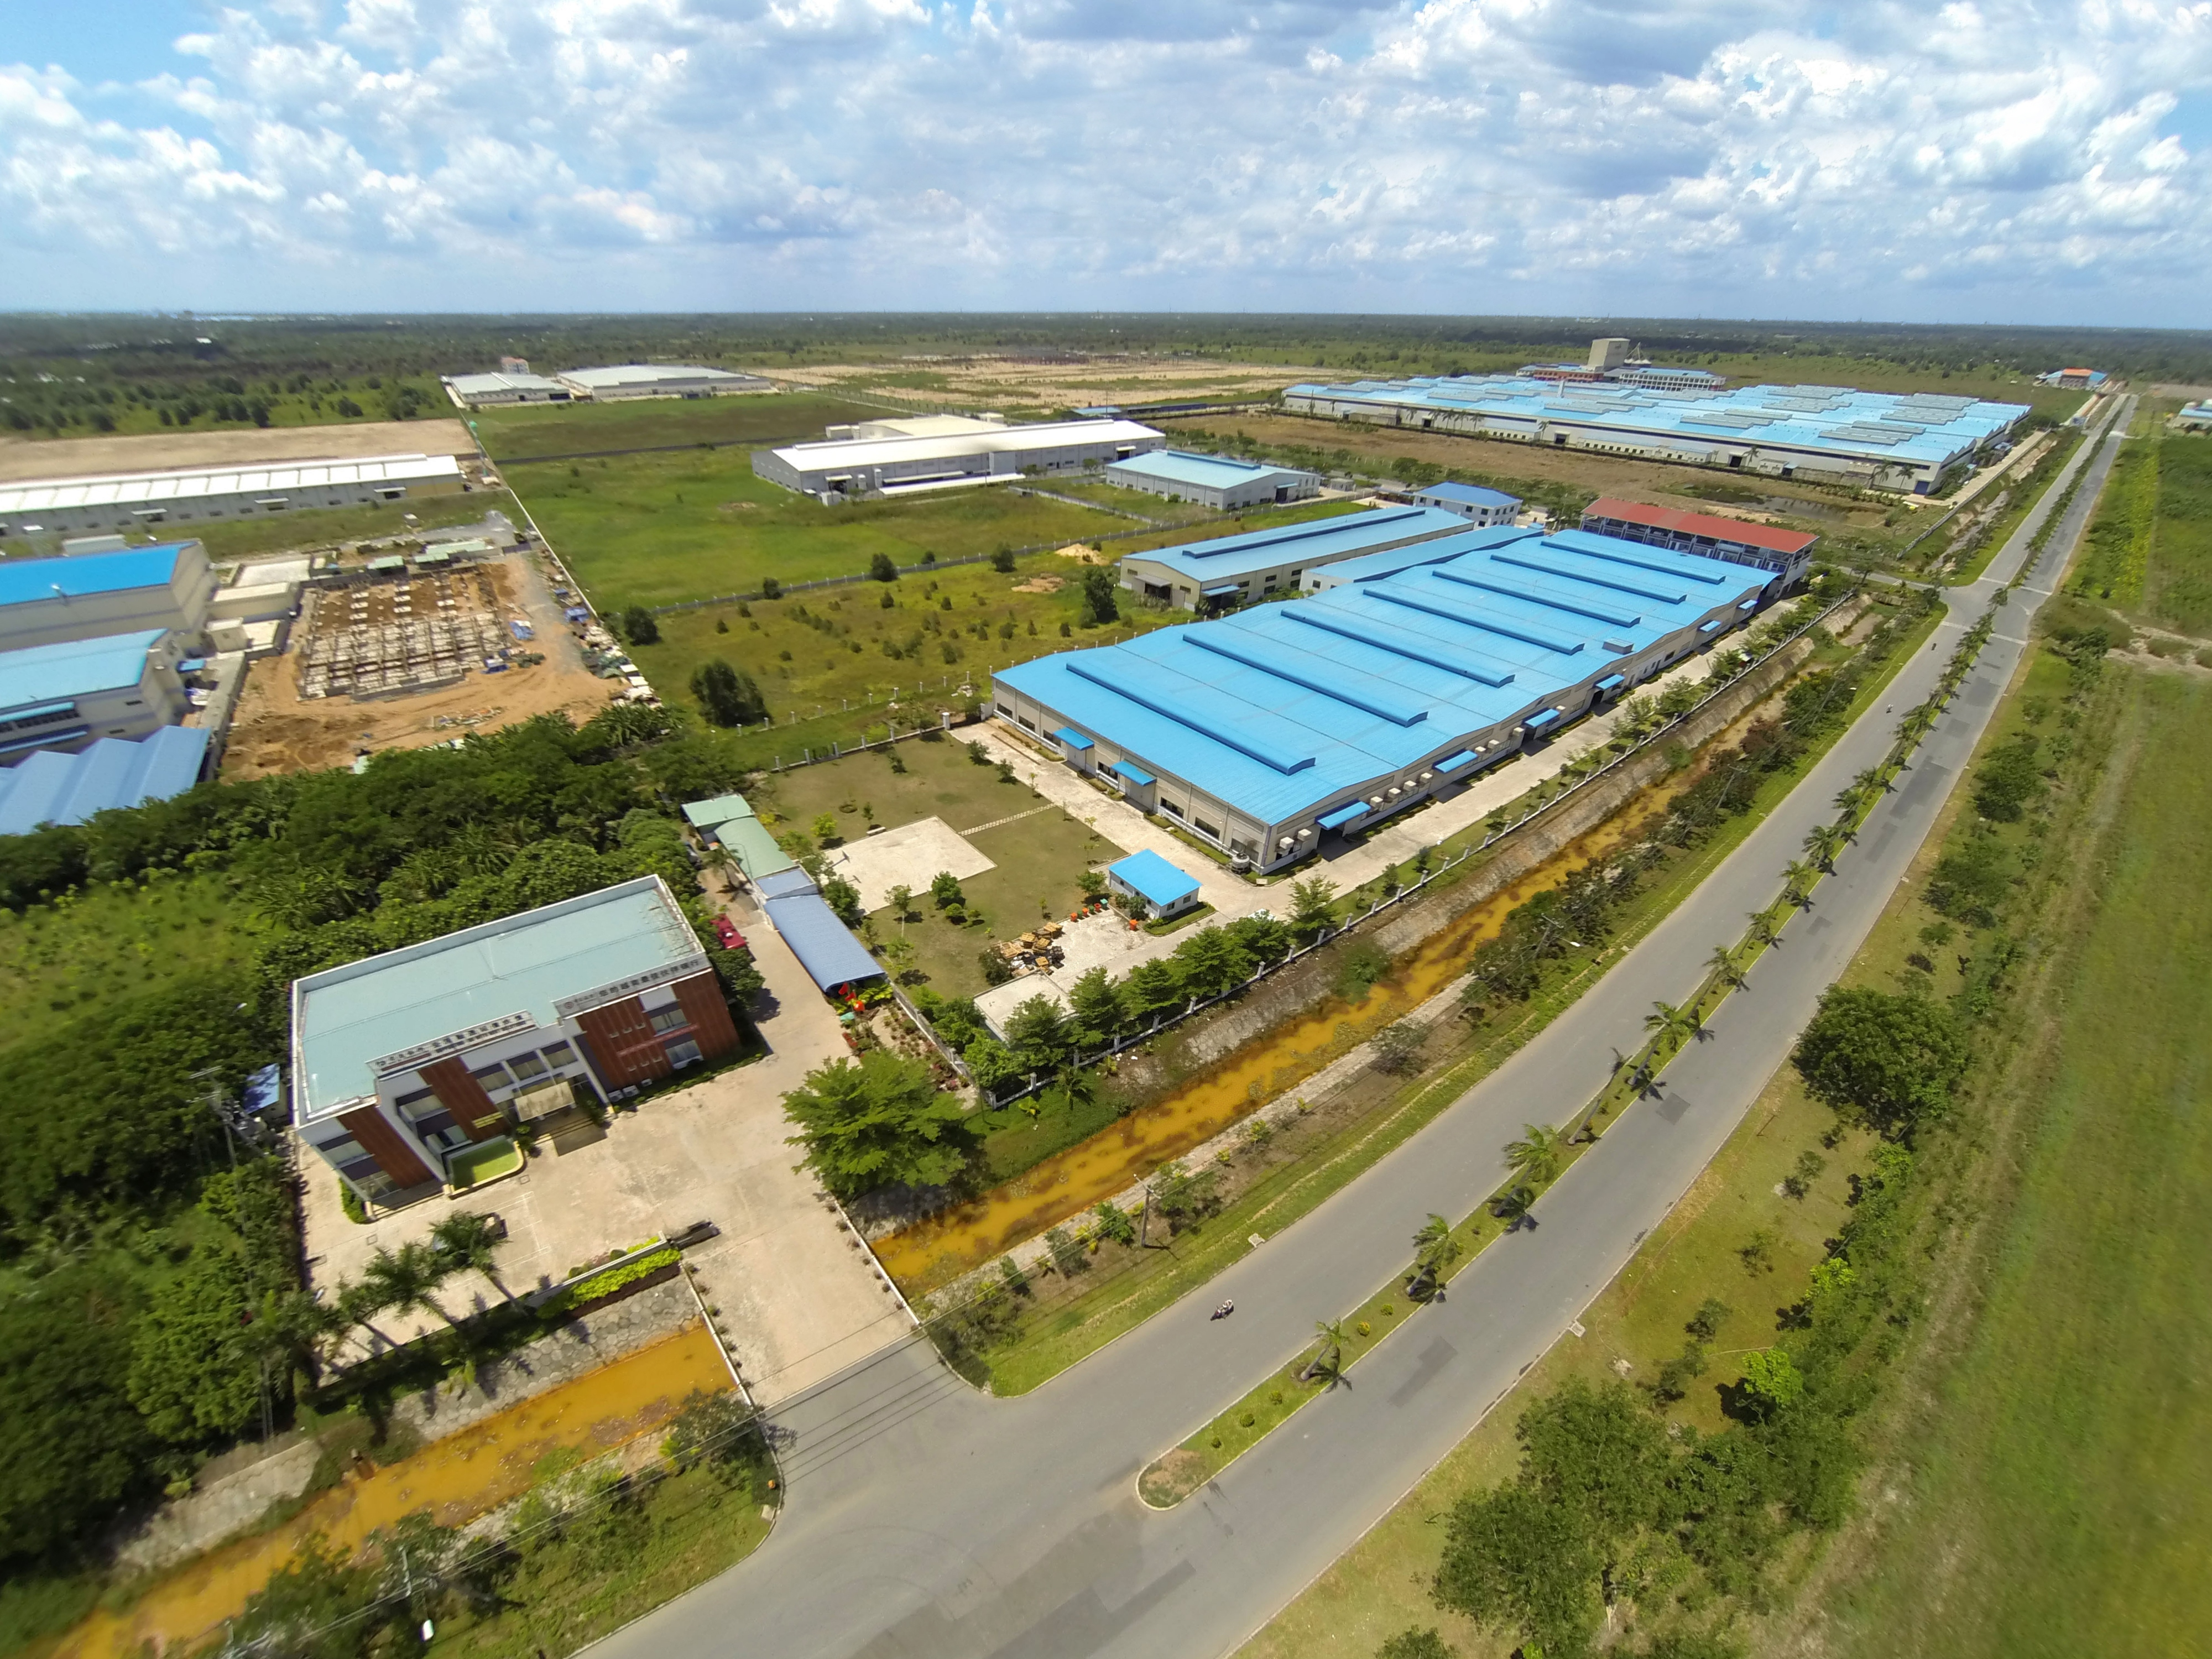 Feature: Chinese-invested industrial park in Vietnam brings opportunities - Xinhua | English.news.cn